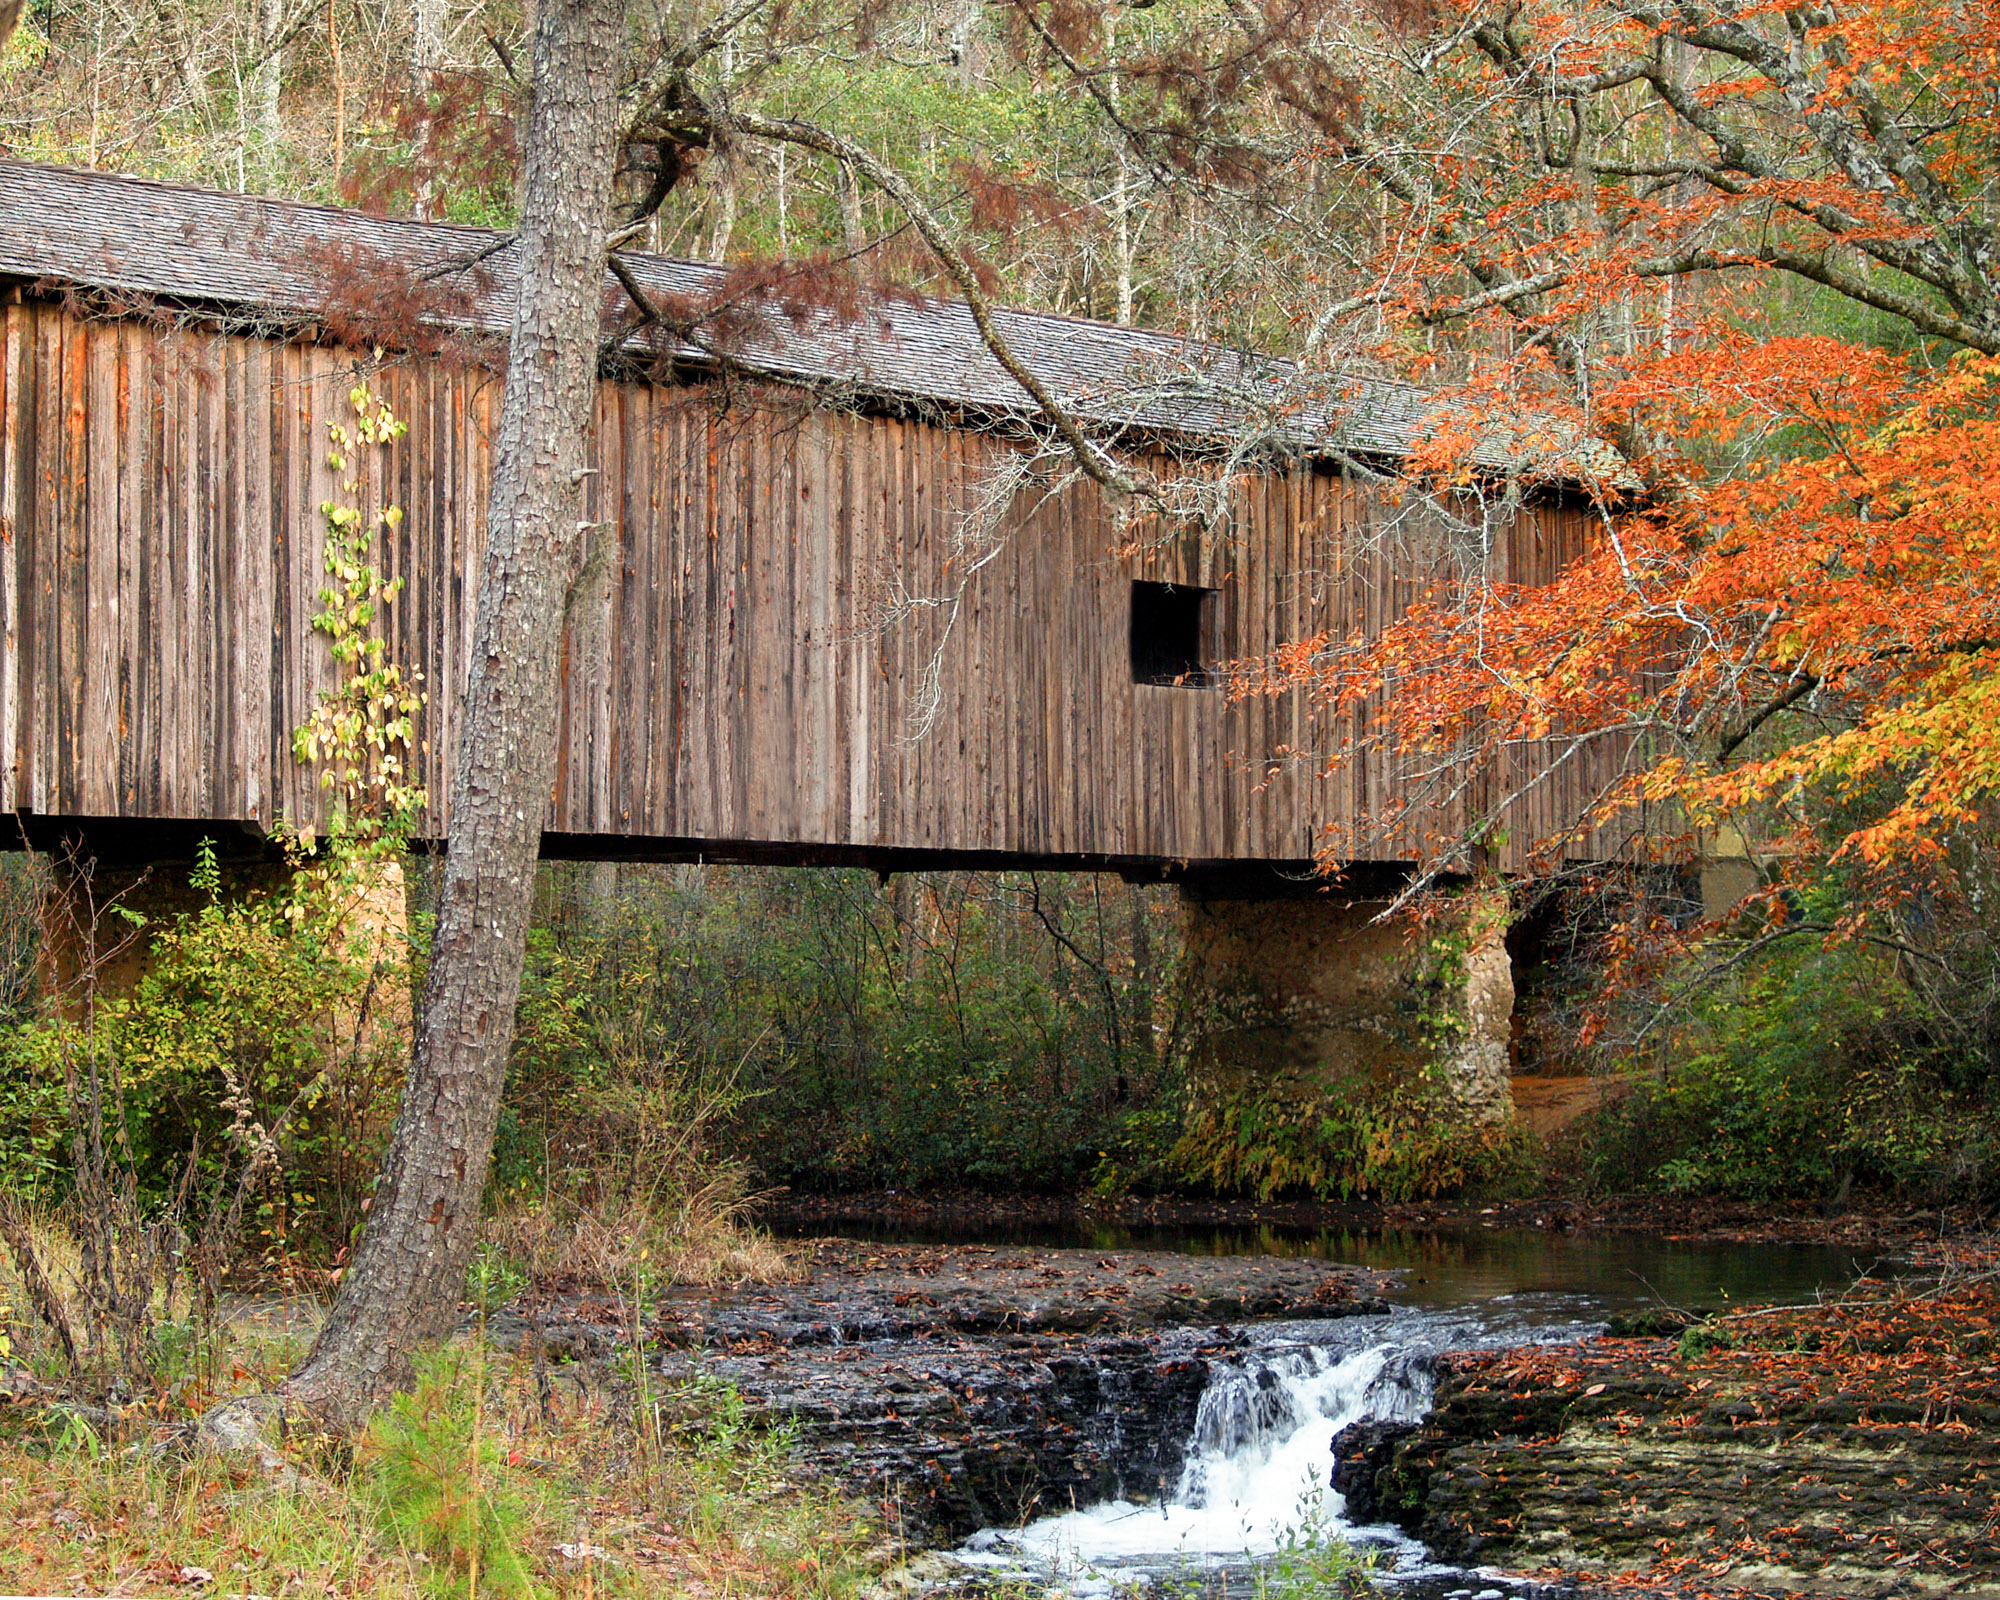 Visit our #1 attraction! Located nine miles southwest of Blakely, in Early County, the Coheelee Creek Covered Bridge is the southernmost covered bridge in the United States. It was built in 1891 and is listed on the National Register of Historic Places.